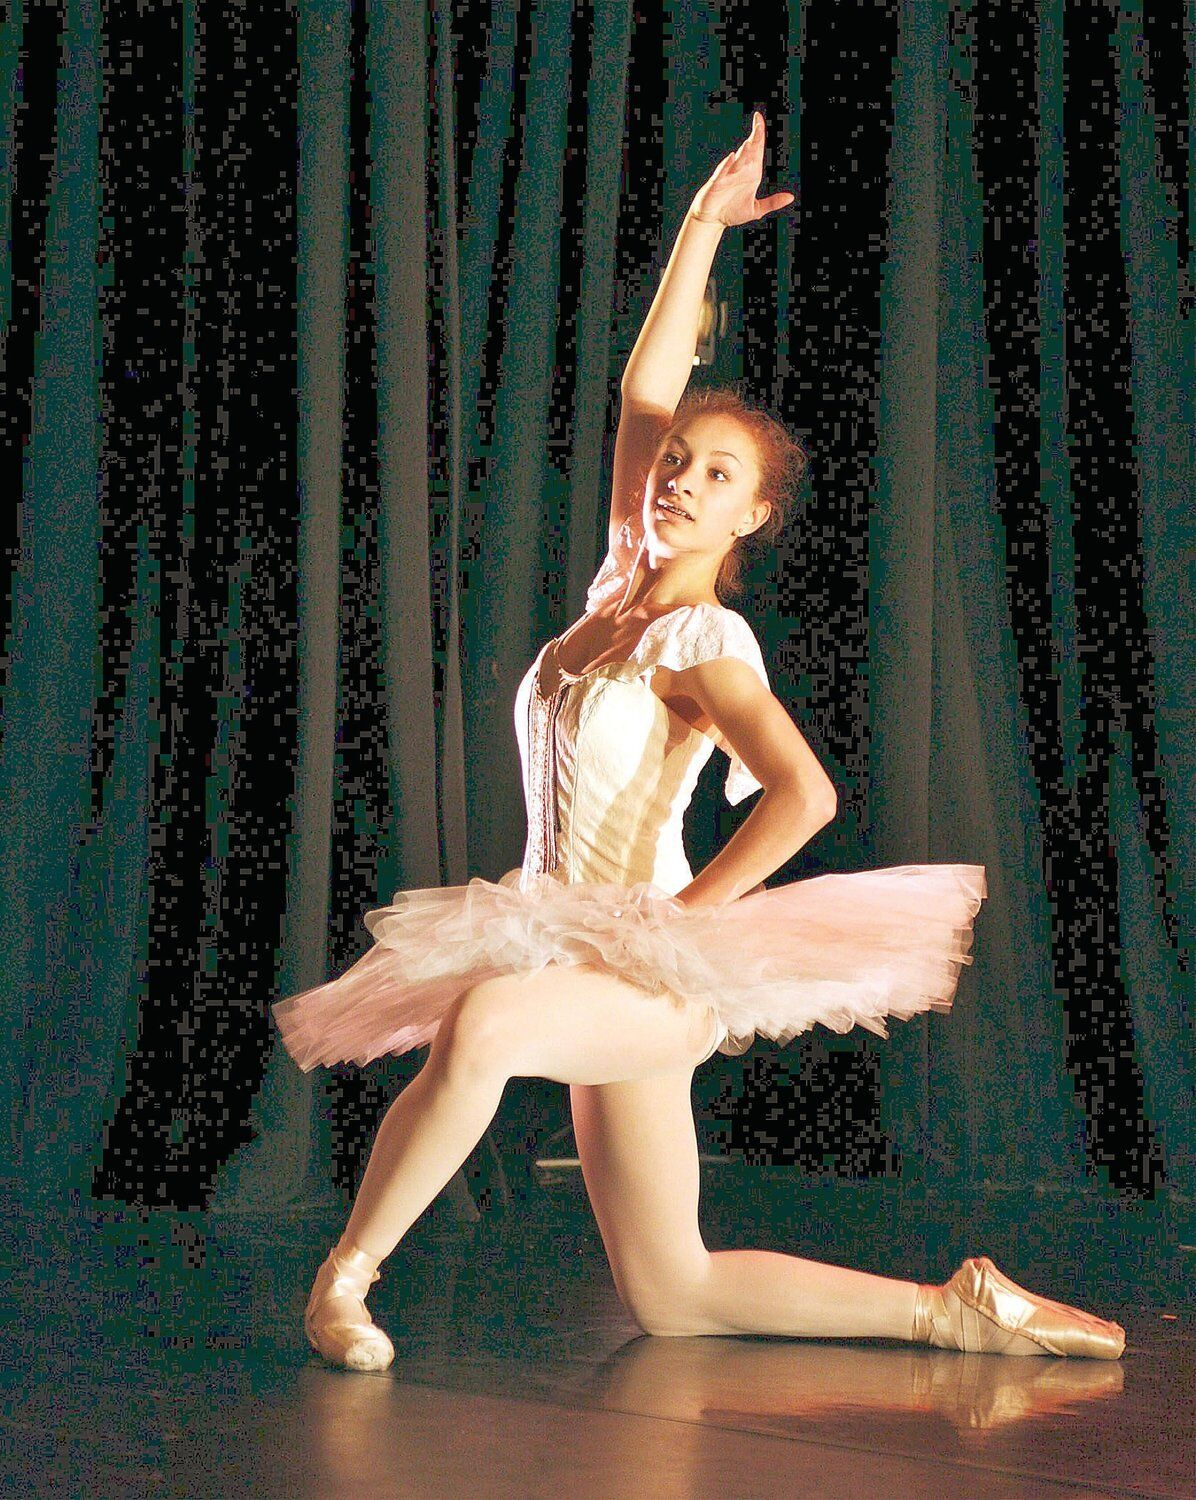 Youth theater offers fall programs